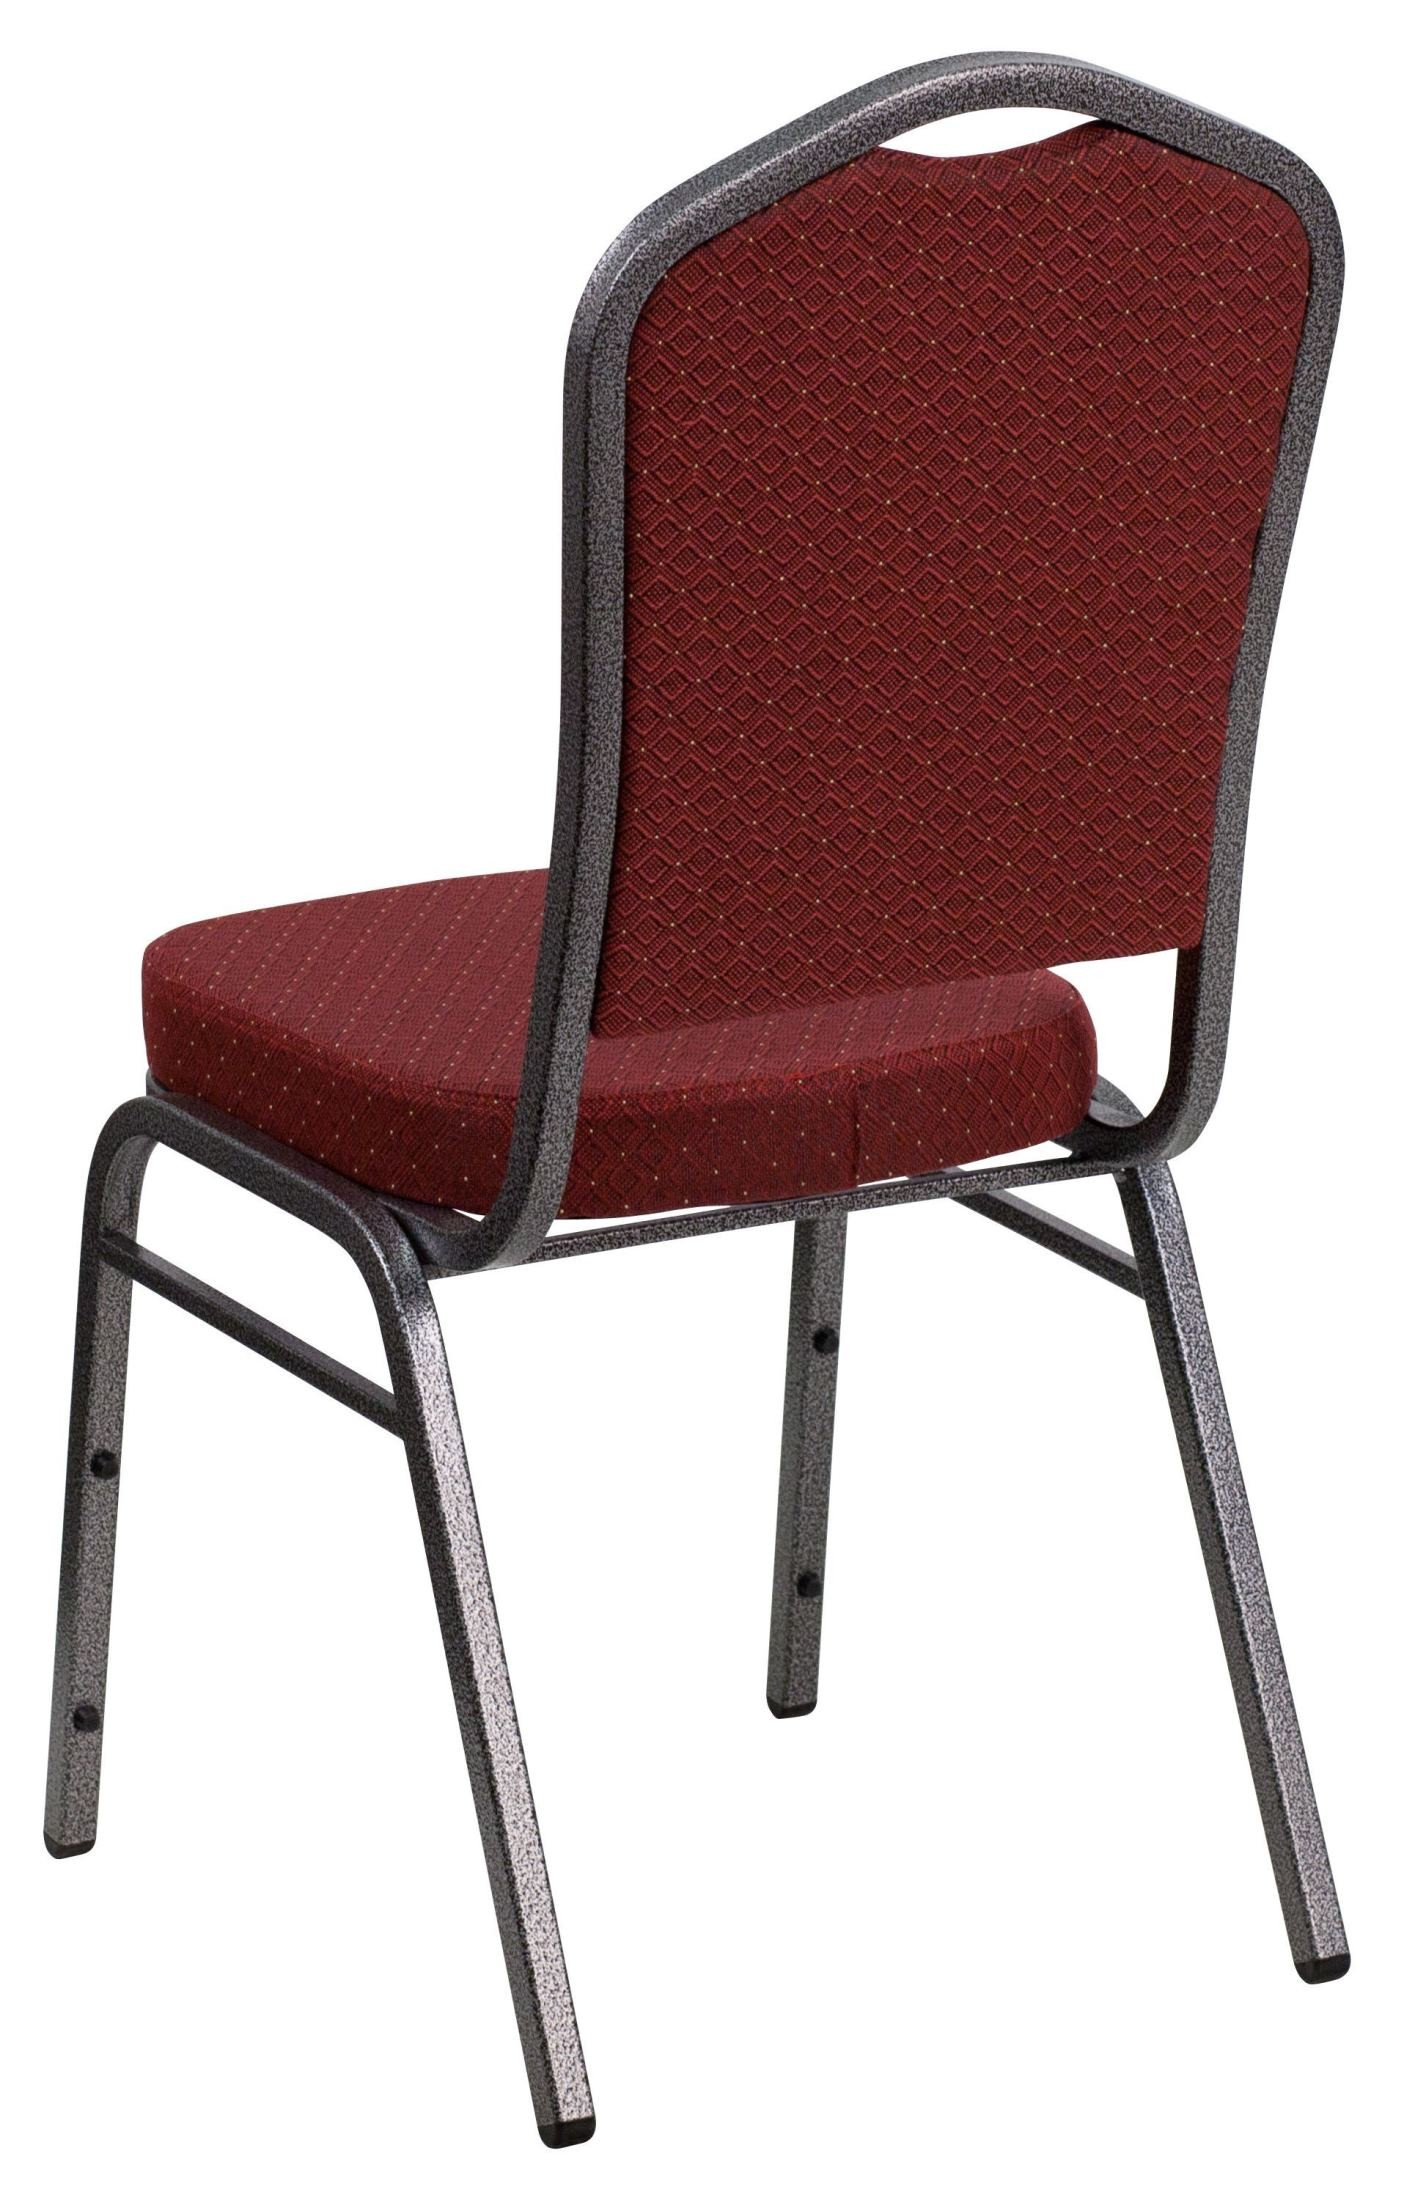 Hercules Stacking Chairs Hercules Series Crown Back Stacking Burgundy Fabric